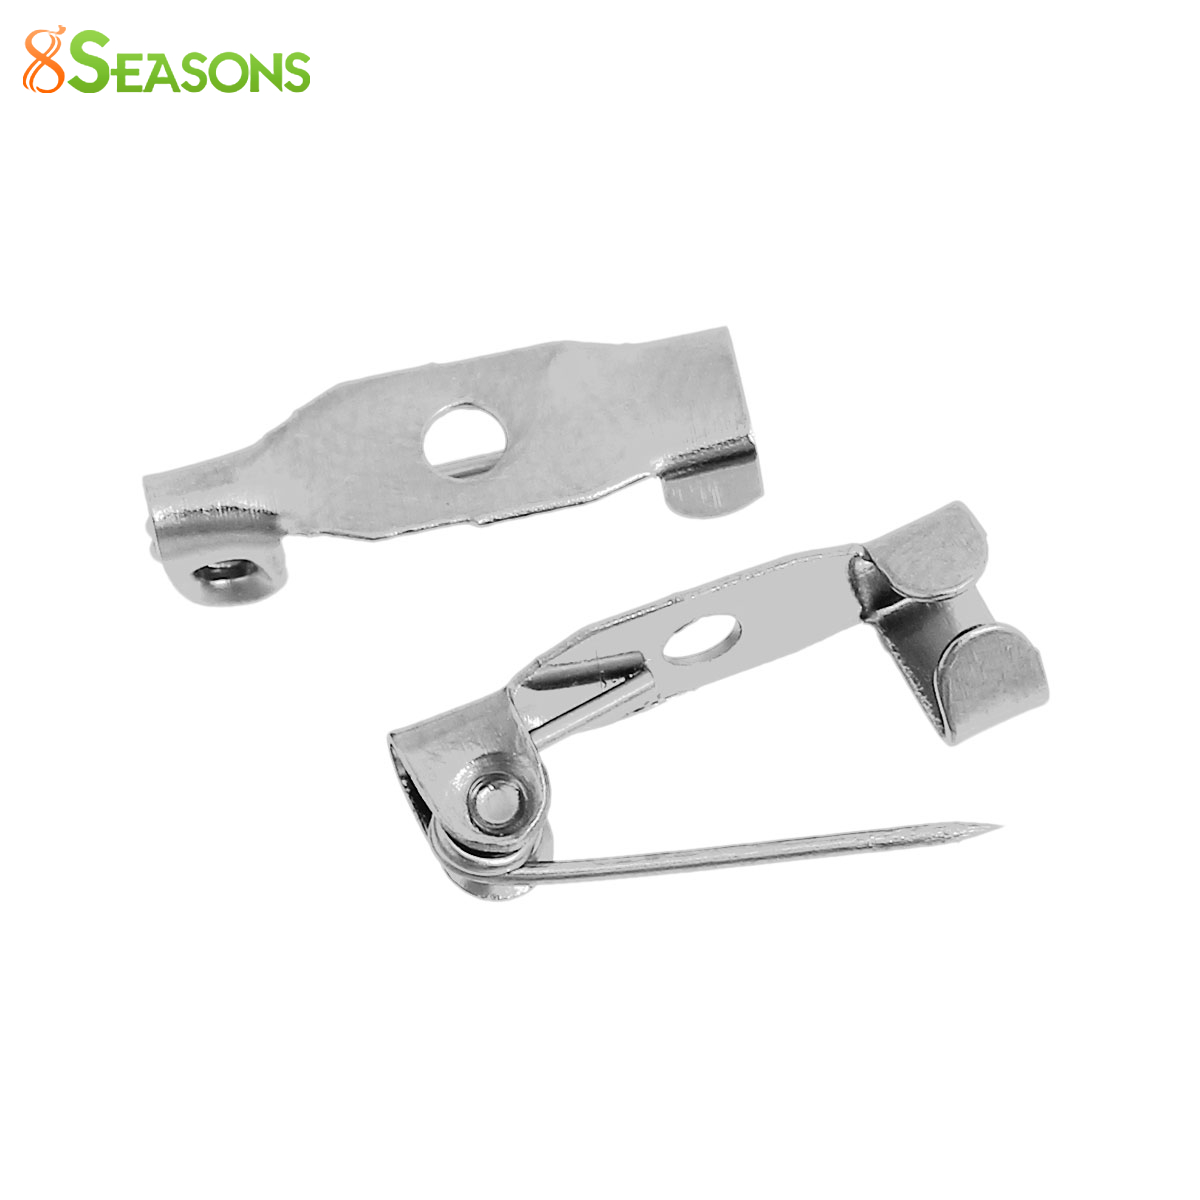 8SEASONS Iron Based Alloy Safety Pins Brooches Findings silver-color 15mm( 5/8) x 4mm( 1/8), 100 PCs